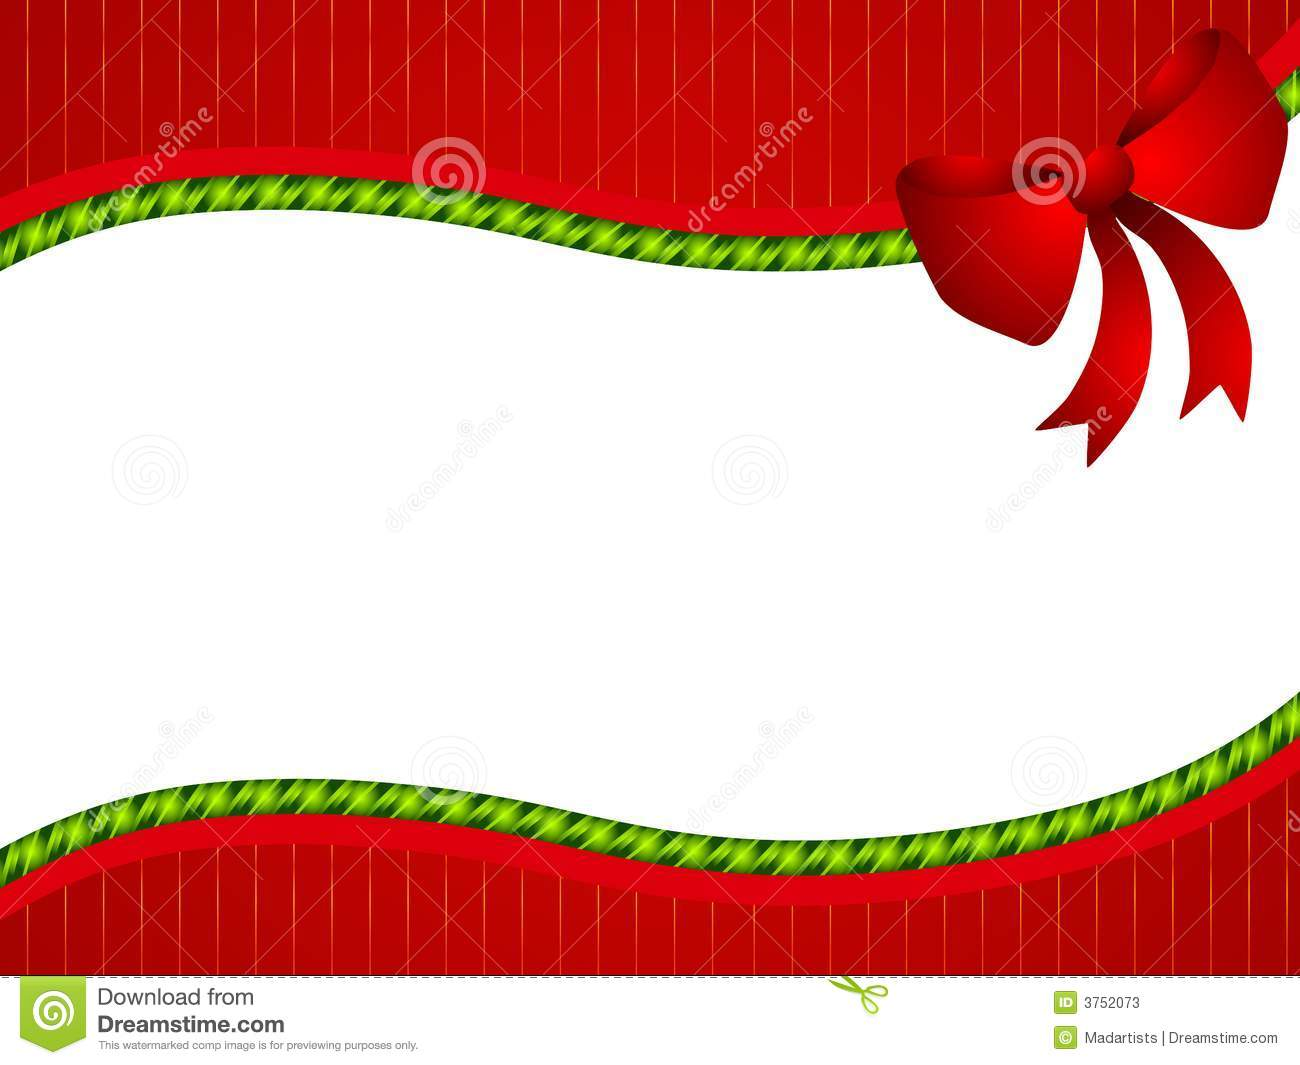 http://thumbs.dreamstime.com/z/red-green-christmas-bow-border-3752073.jpg